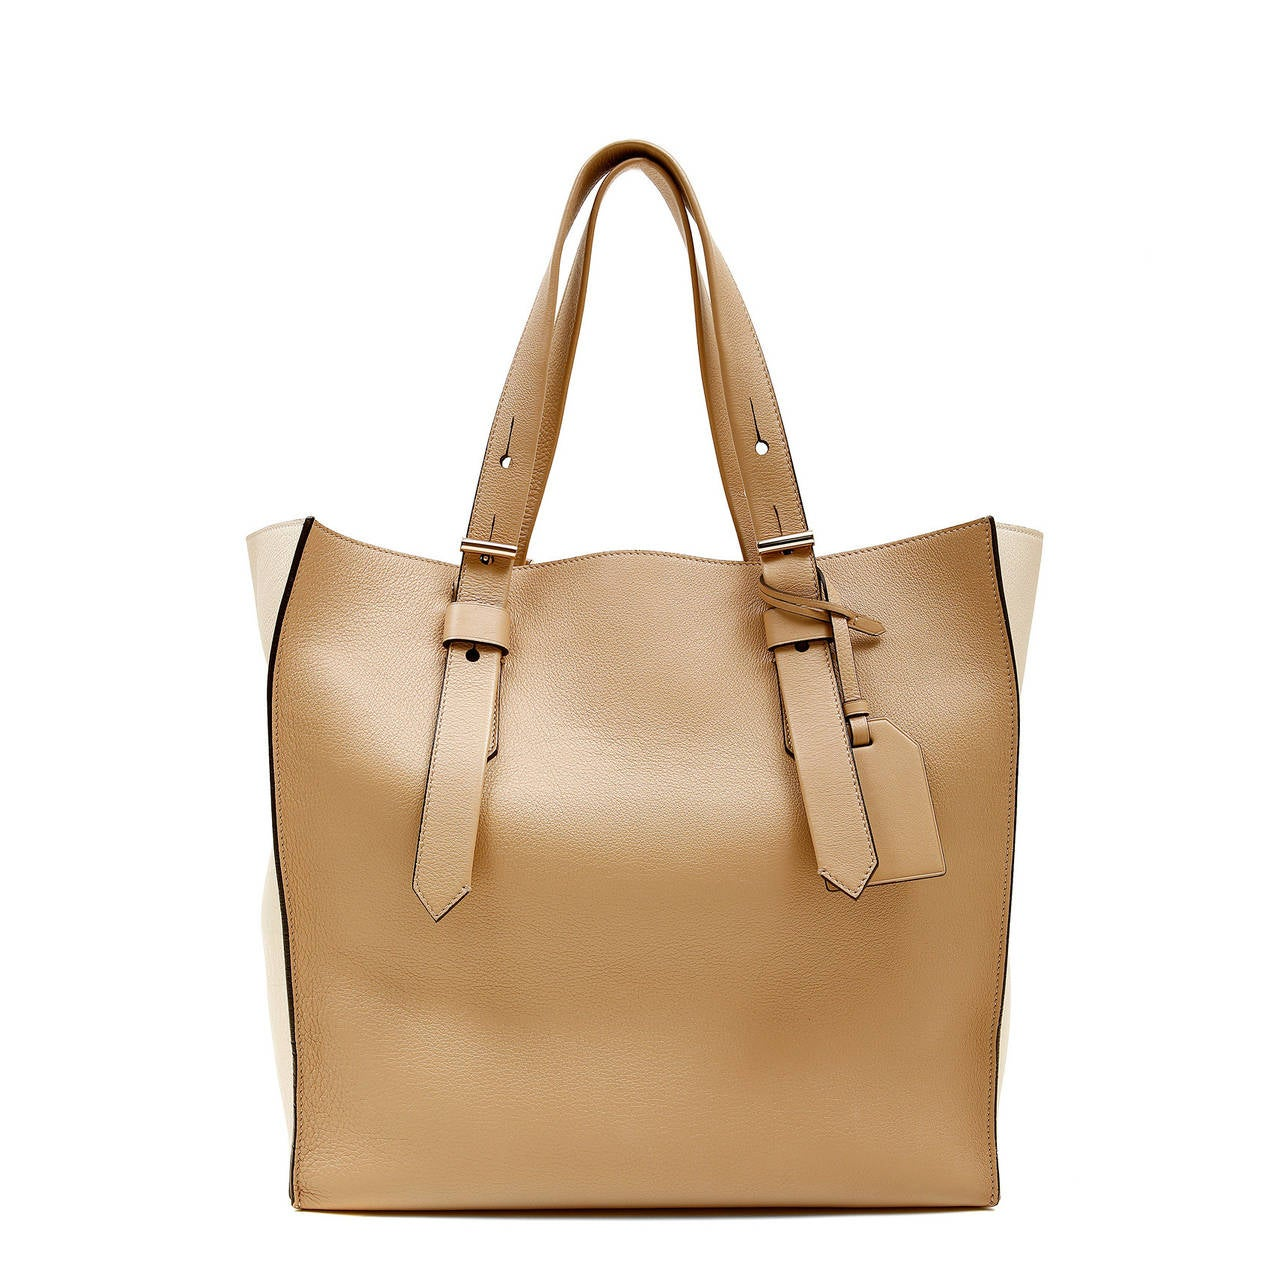 1stdibs 2000s Reed Krakoff Leather Bag